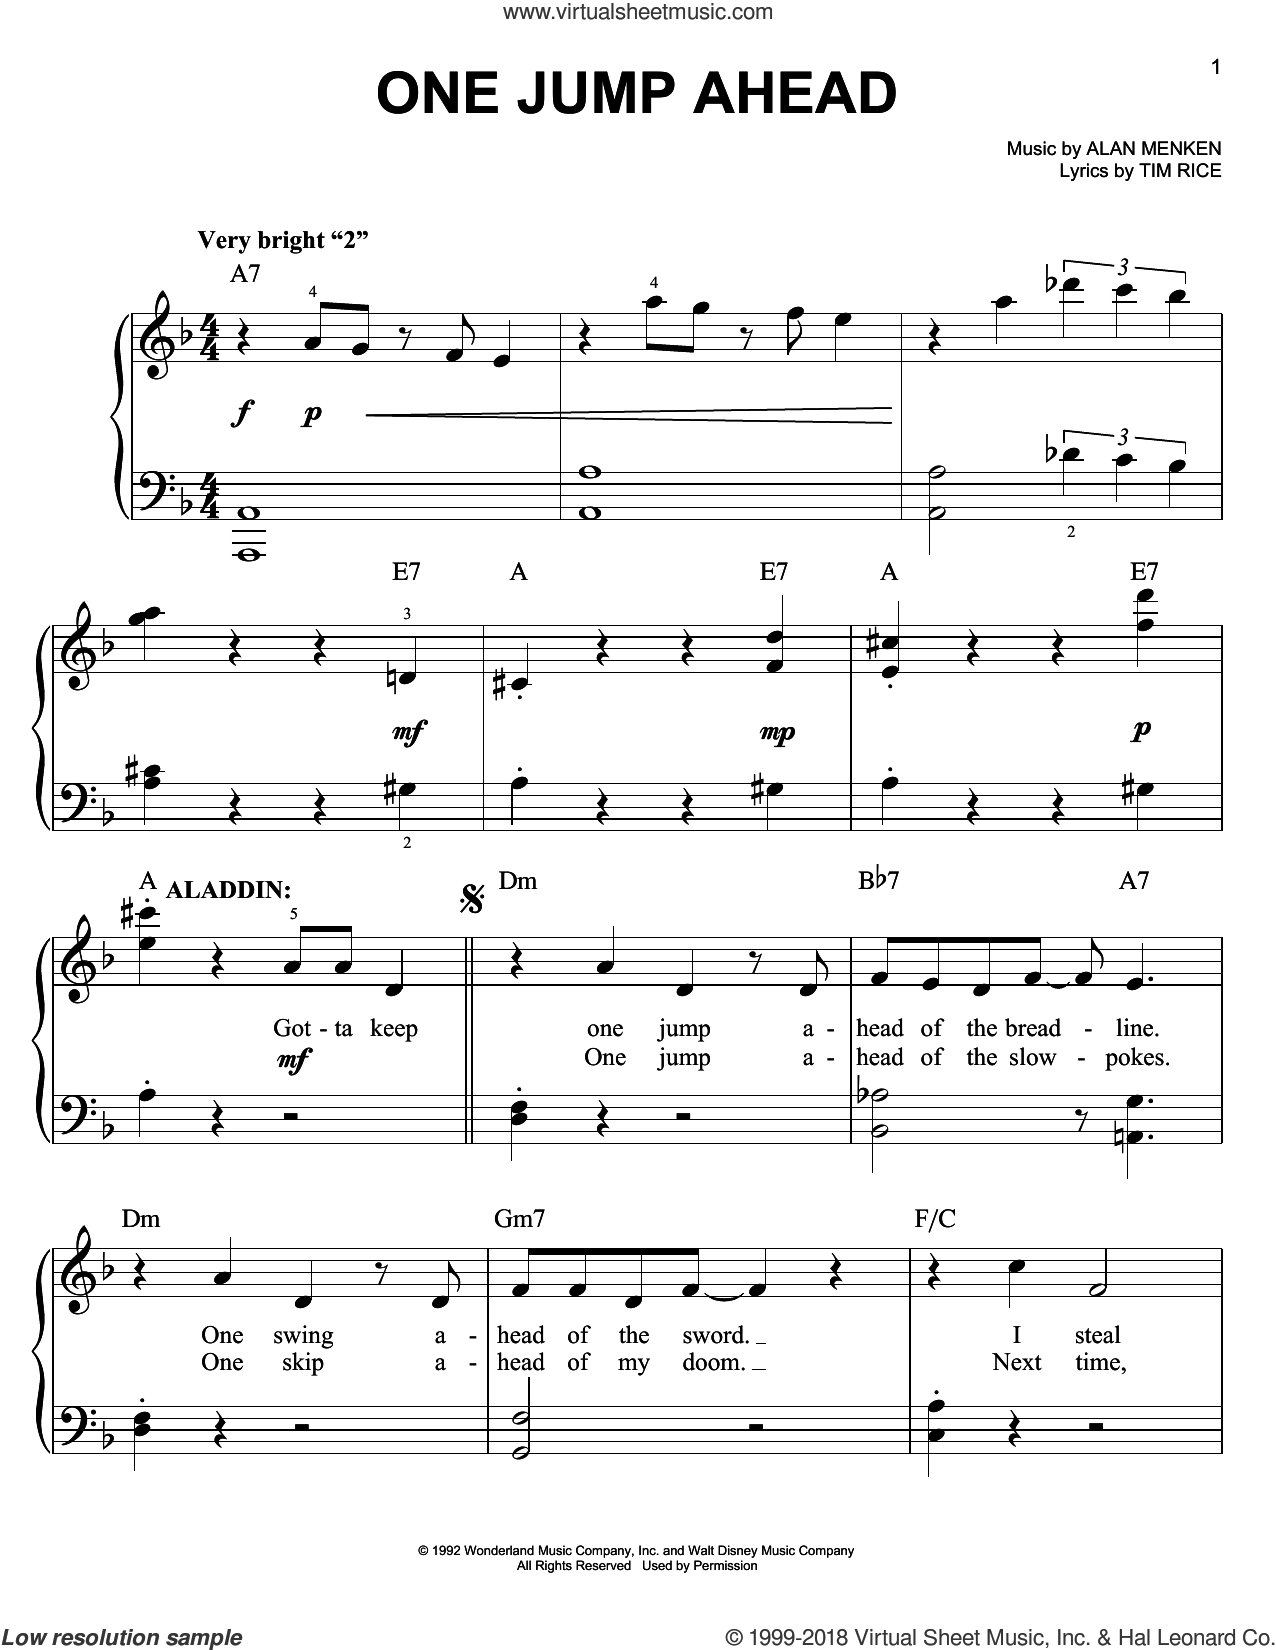 One Jump Ahead sheet music for piano solo by Alan Menken and Tim Rice. Score Image Preview.